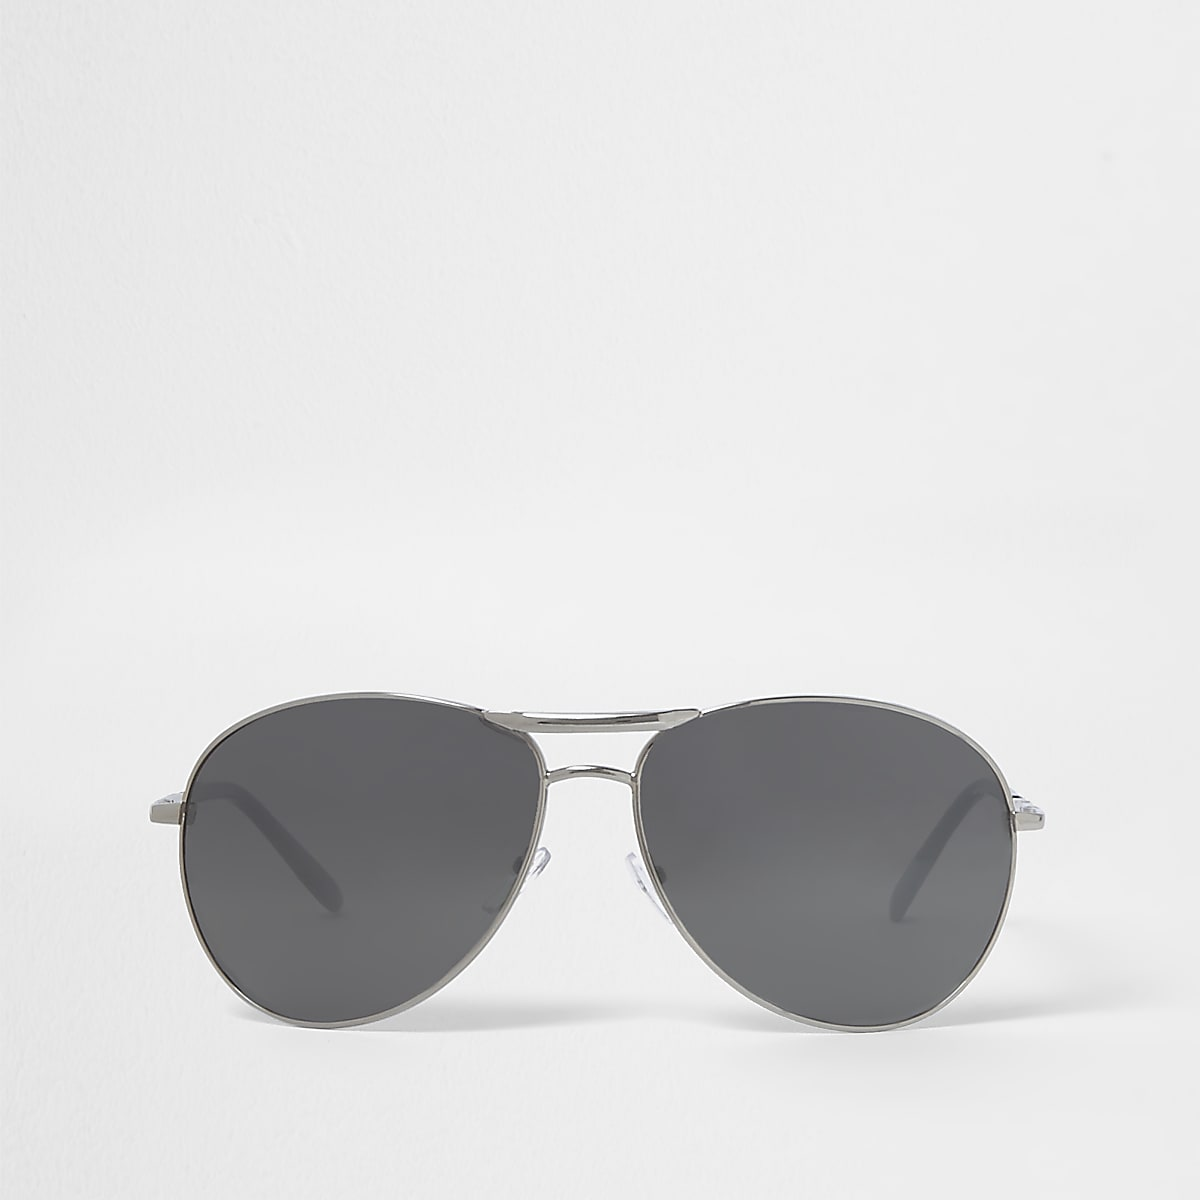 Silver tone aviator mirror sunglasses